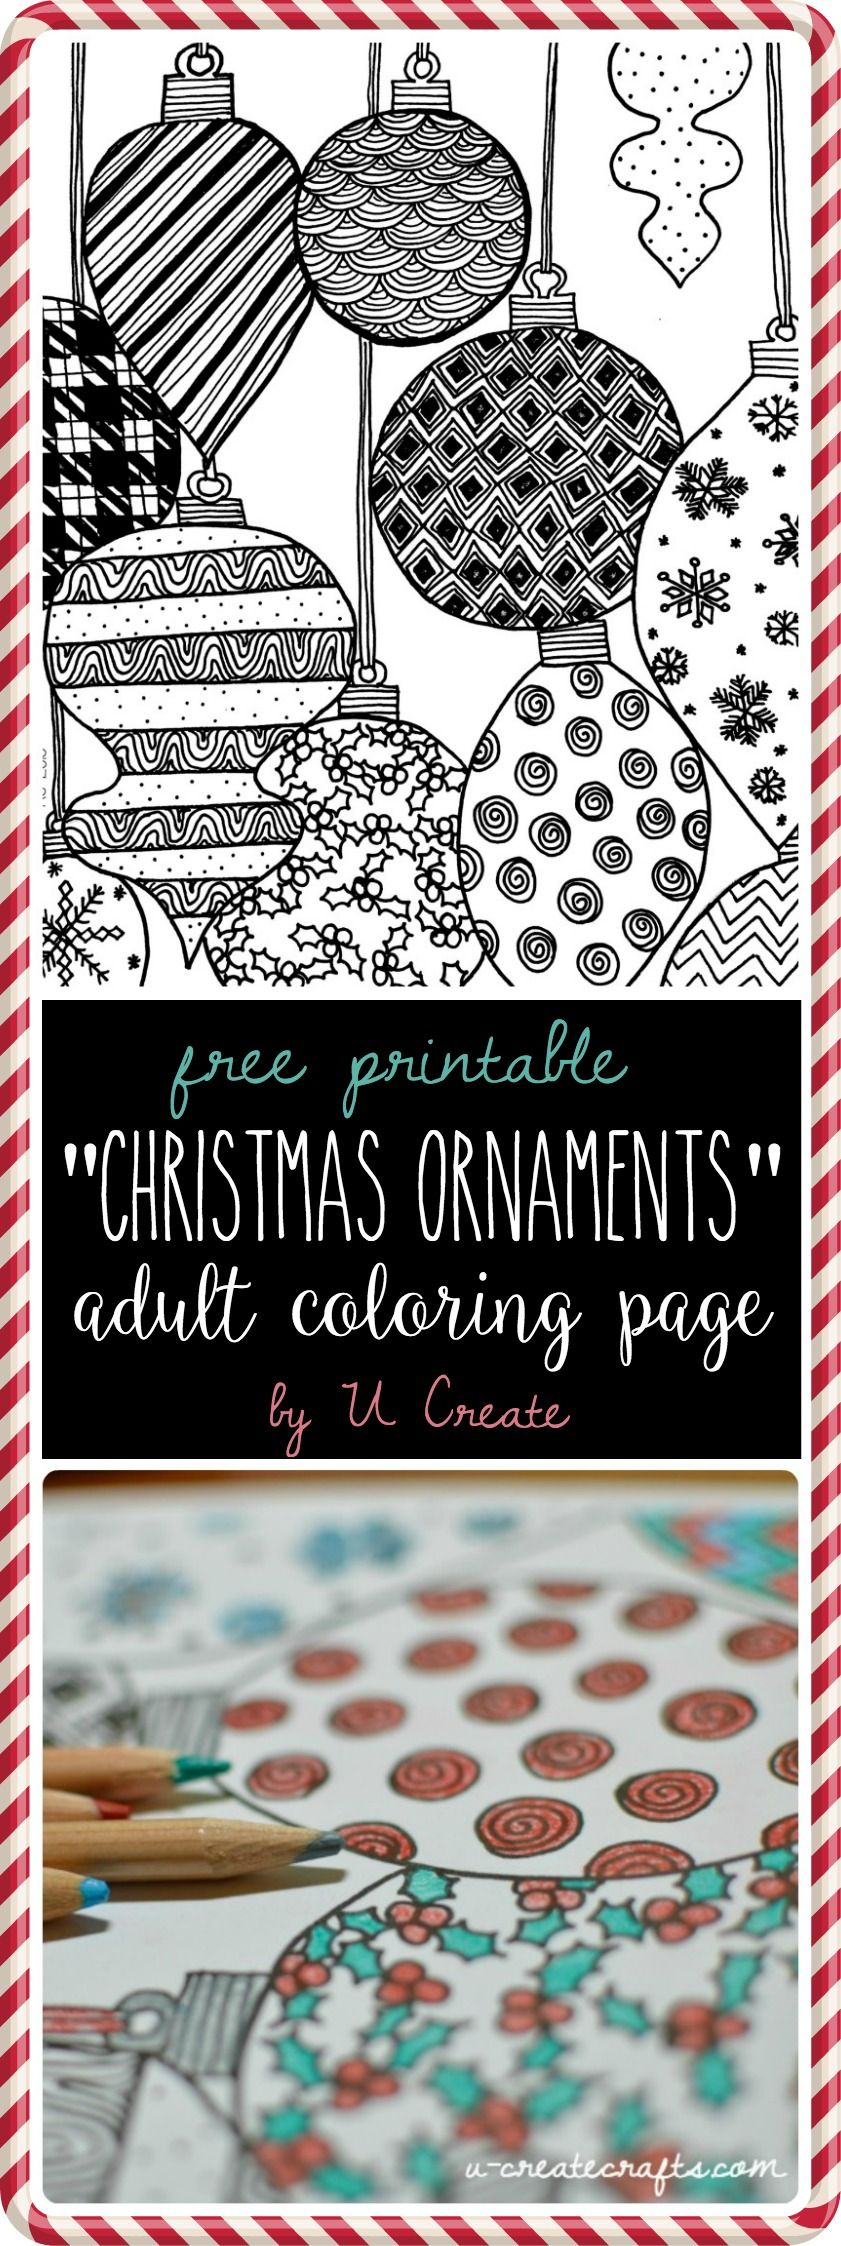 Pinterest christmas adult coloring pages -  Christmas Ornaments Adult Coloring Page